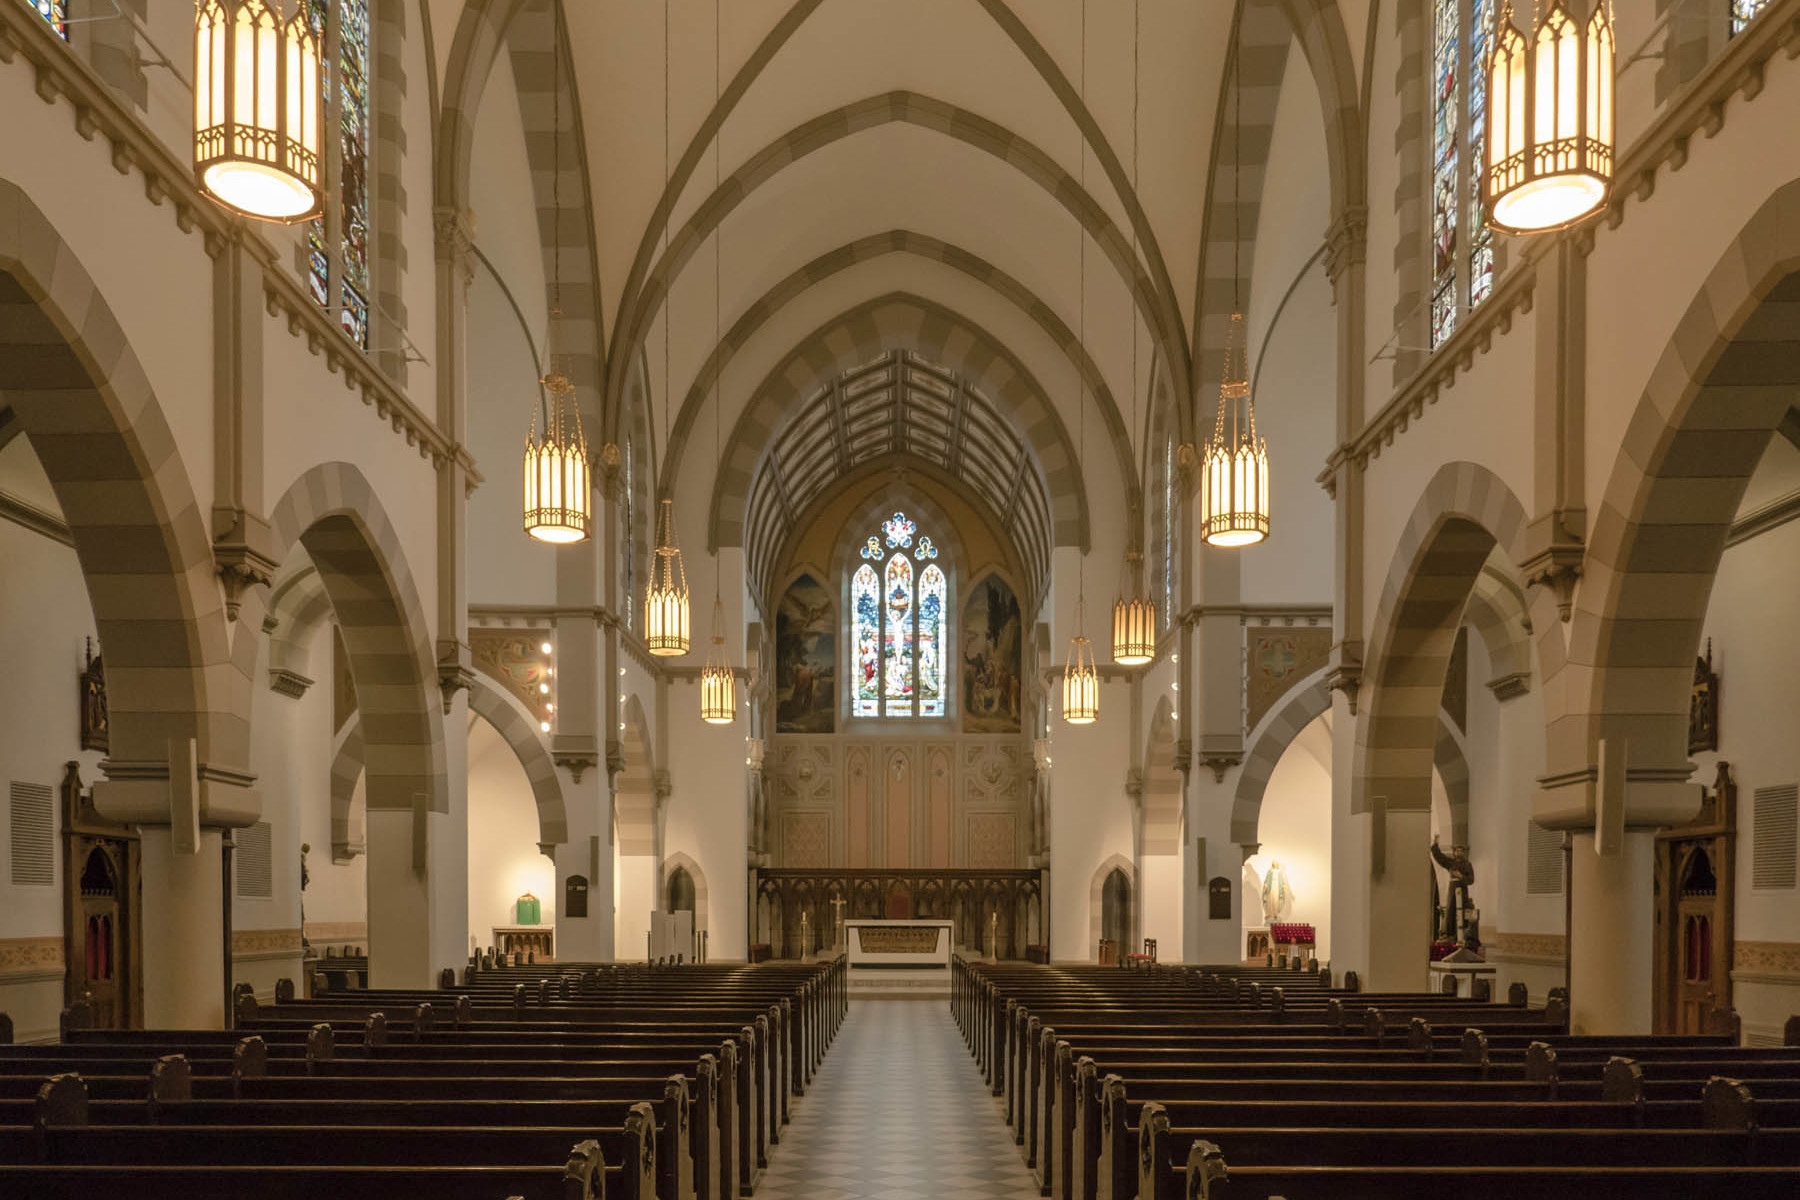 Nave with wood pews, stained glass windows and vaulted ceiling